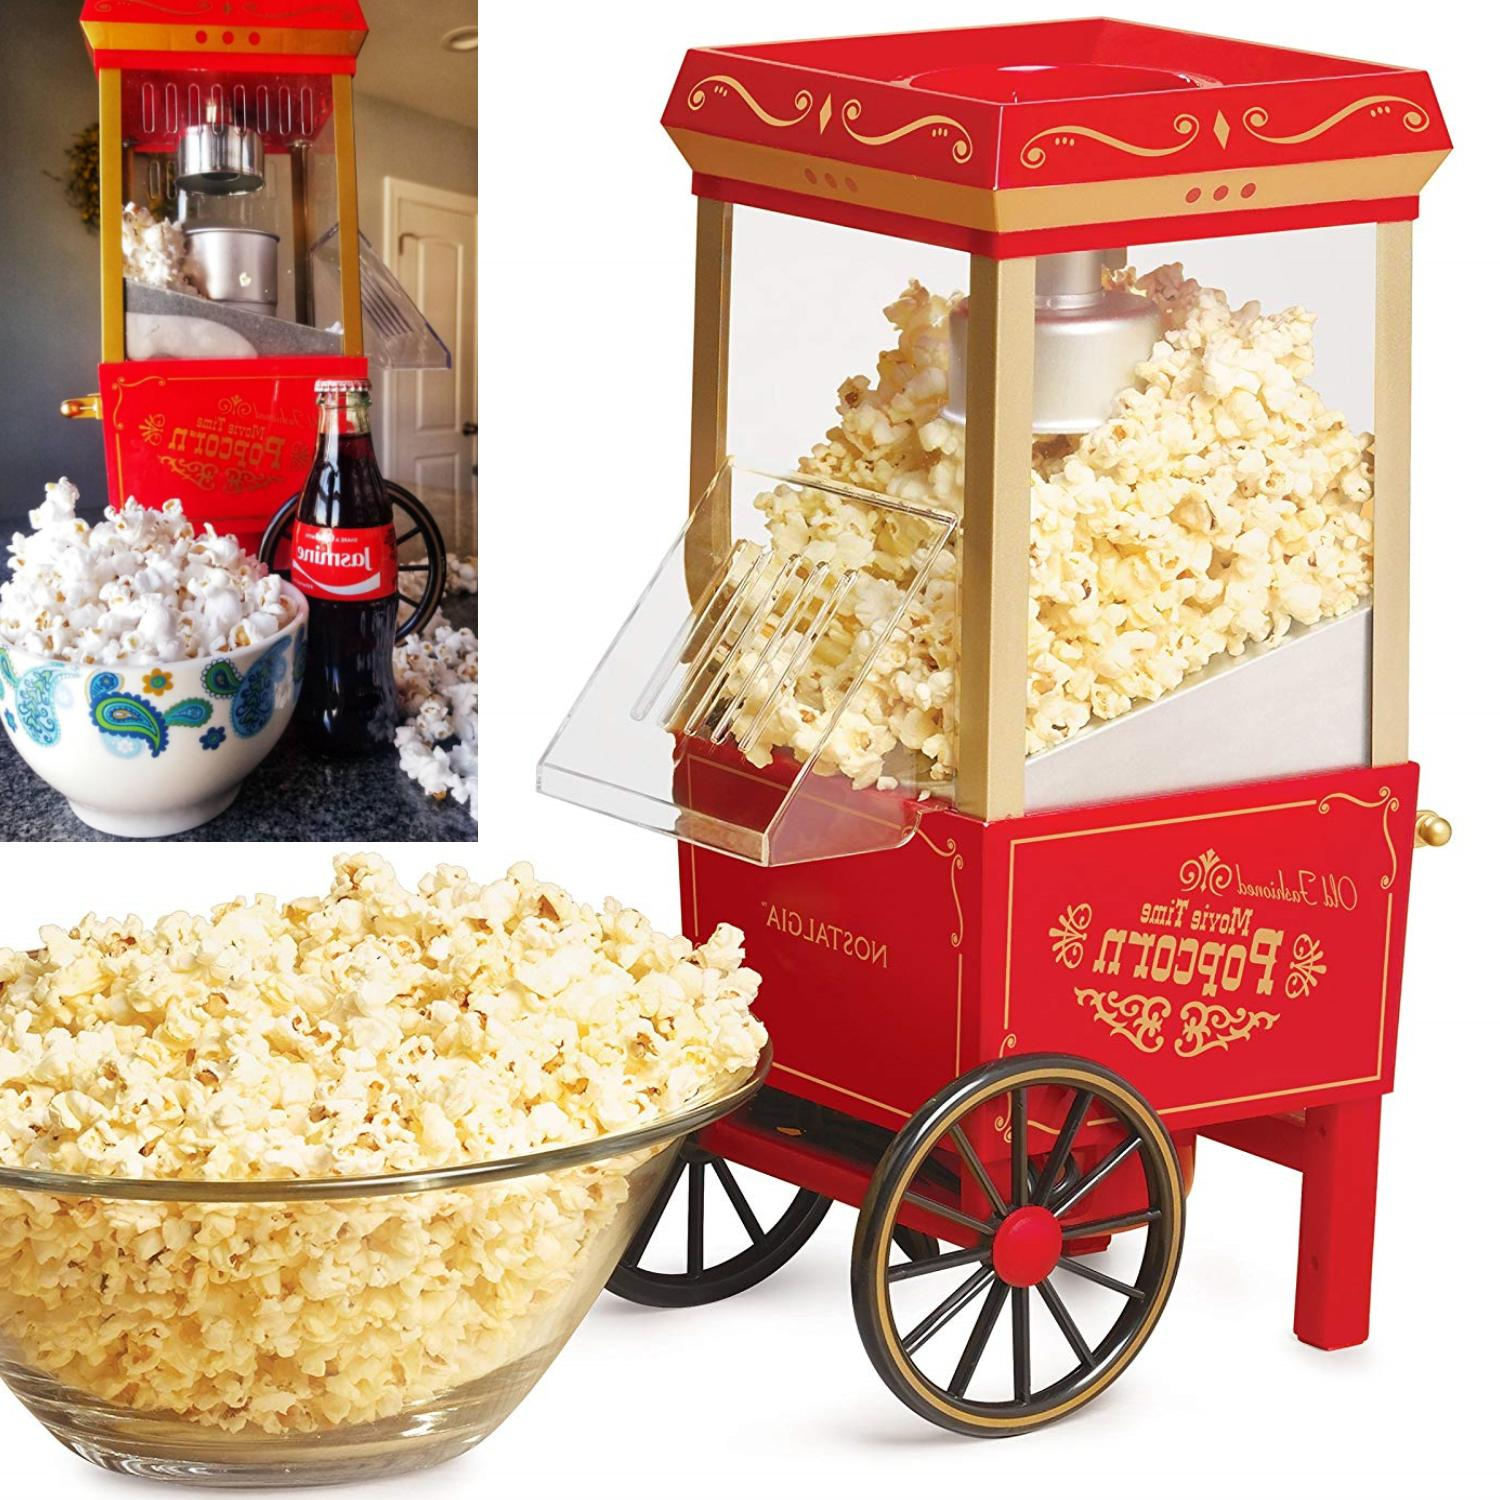 commercial healthy popcorn maker machine 12 cup